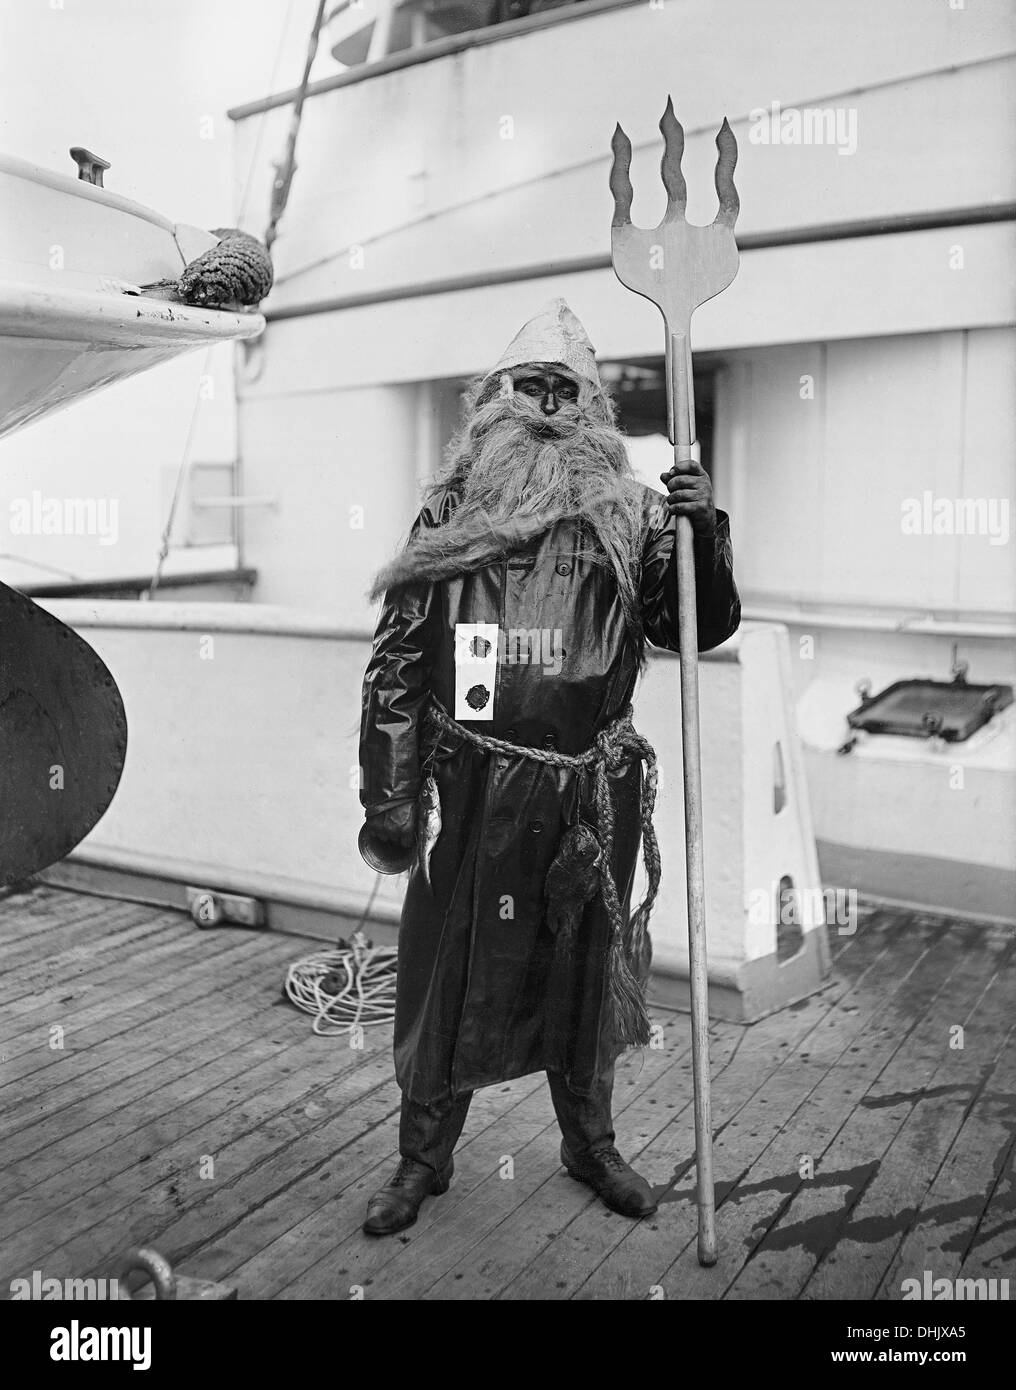 View of a man disguised as Neptune at a party aboard the passenger liner 'Victoria Luise', undated photograph (1912). The image was taken by the German photographer Oswald Lübeck, one of the earliest representatives of travel photography and ship photography aboard passenger ships. Photo: Deutsche Fotothek/Oswald Lübeck - Stock Image